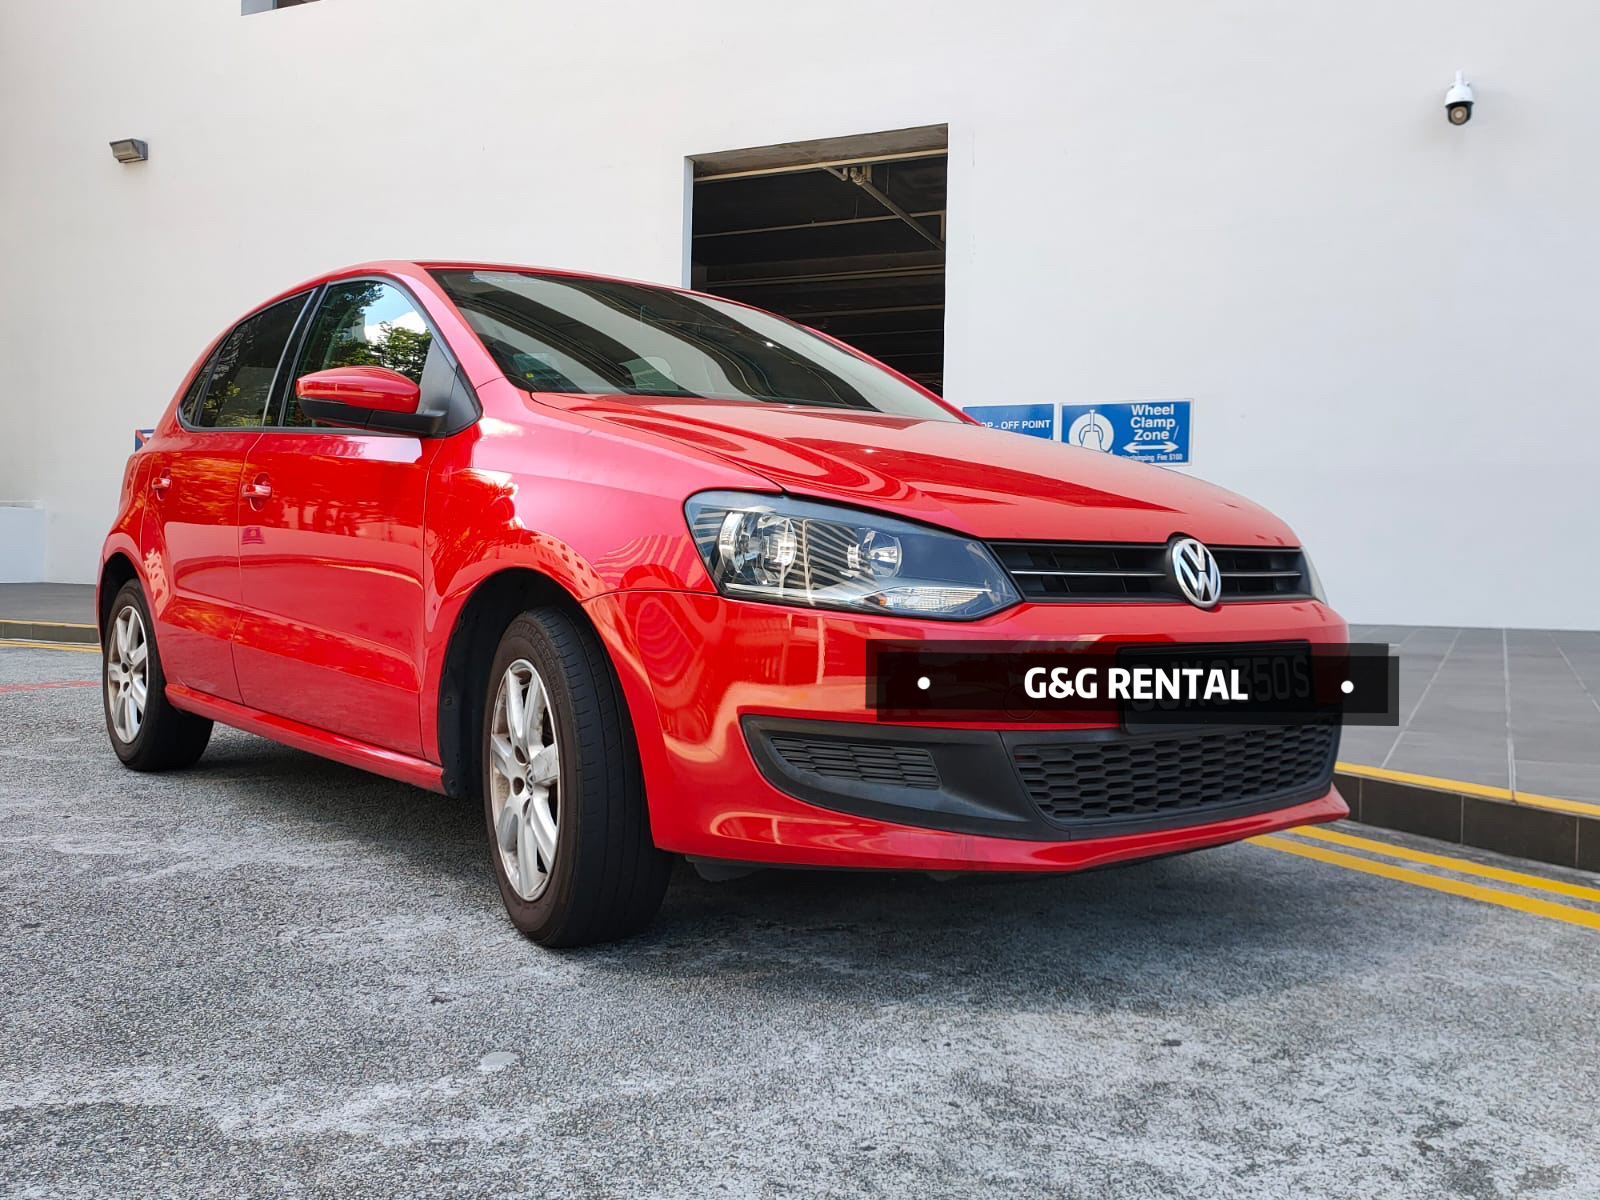 Volkswagen Polo 1.4A (For Rent)